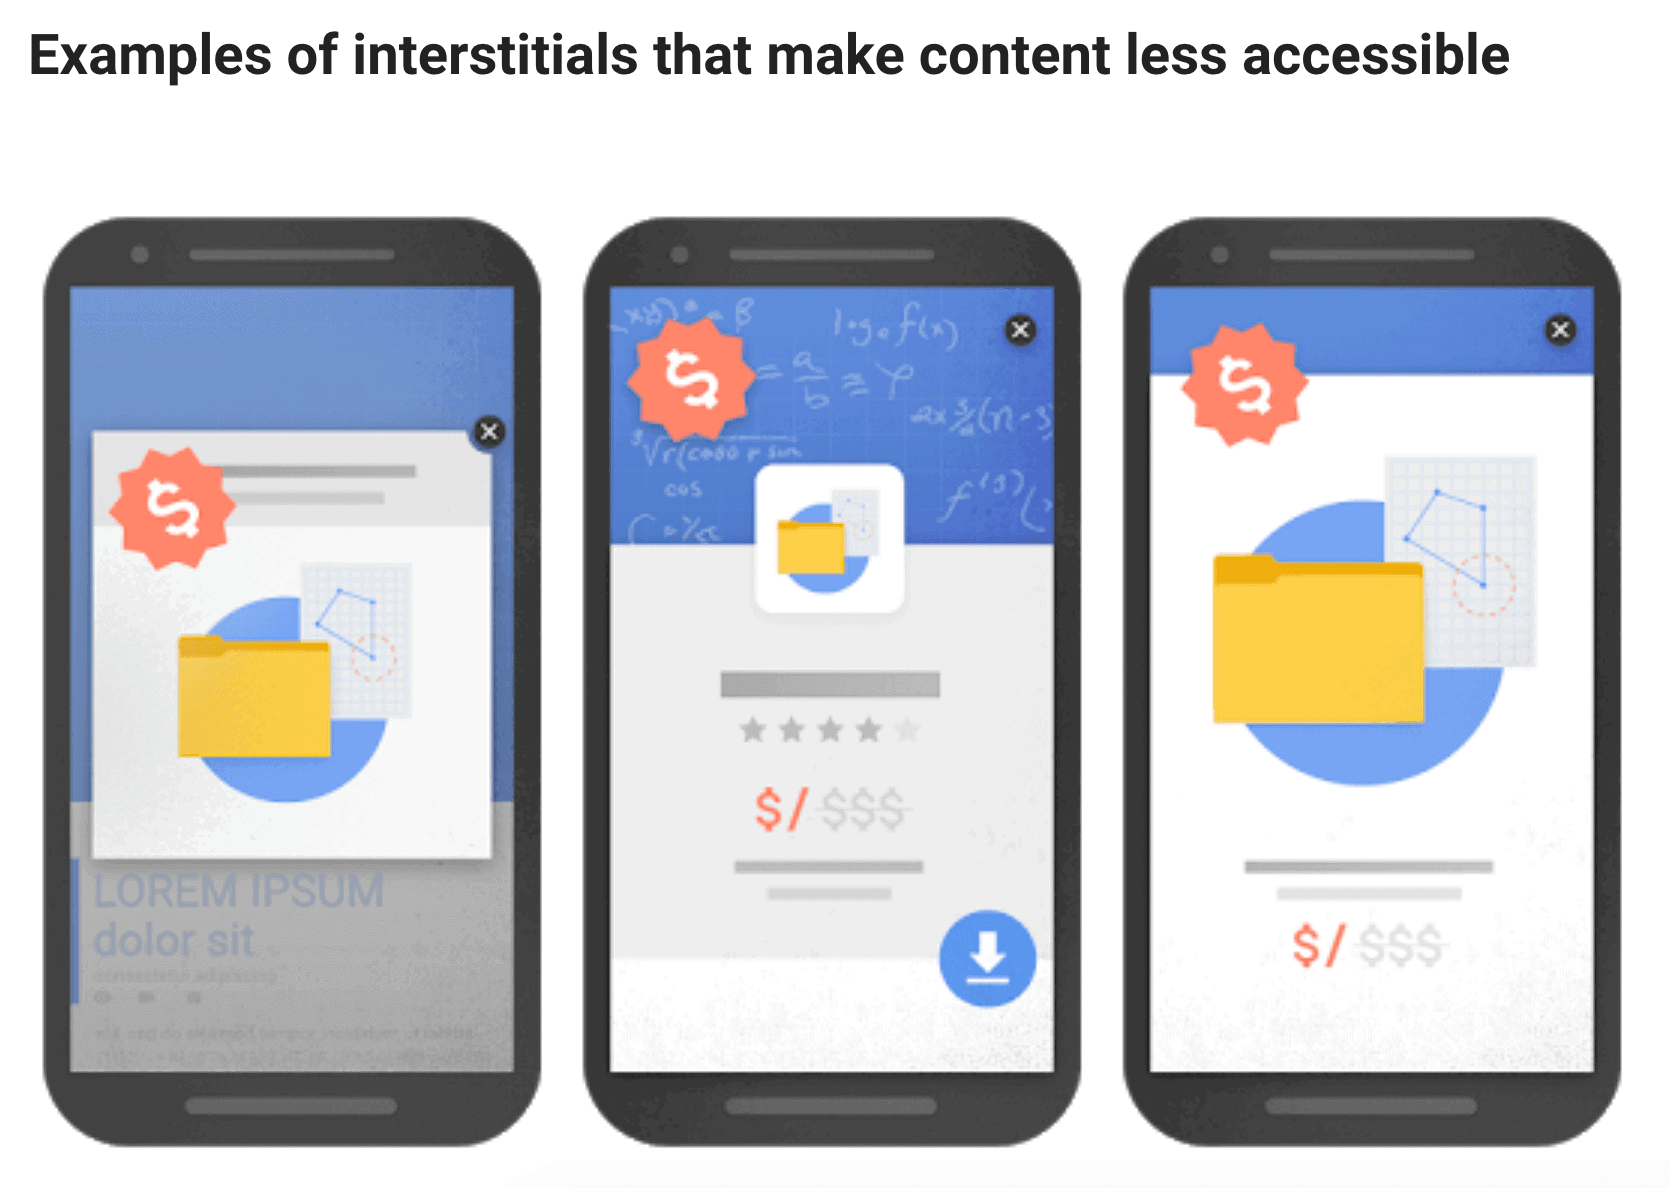 Interstitials